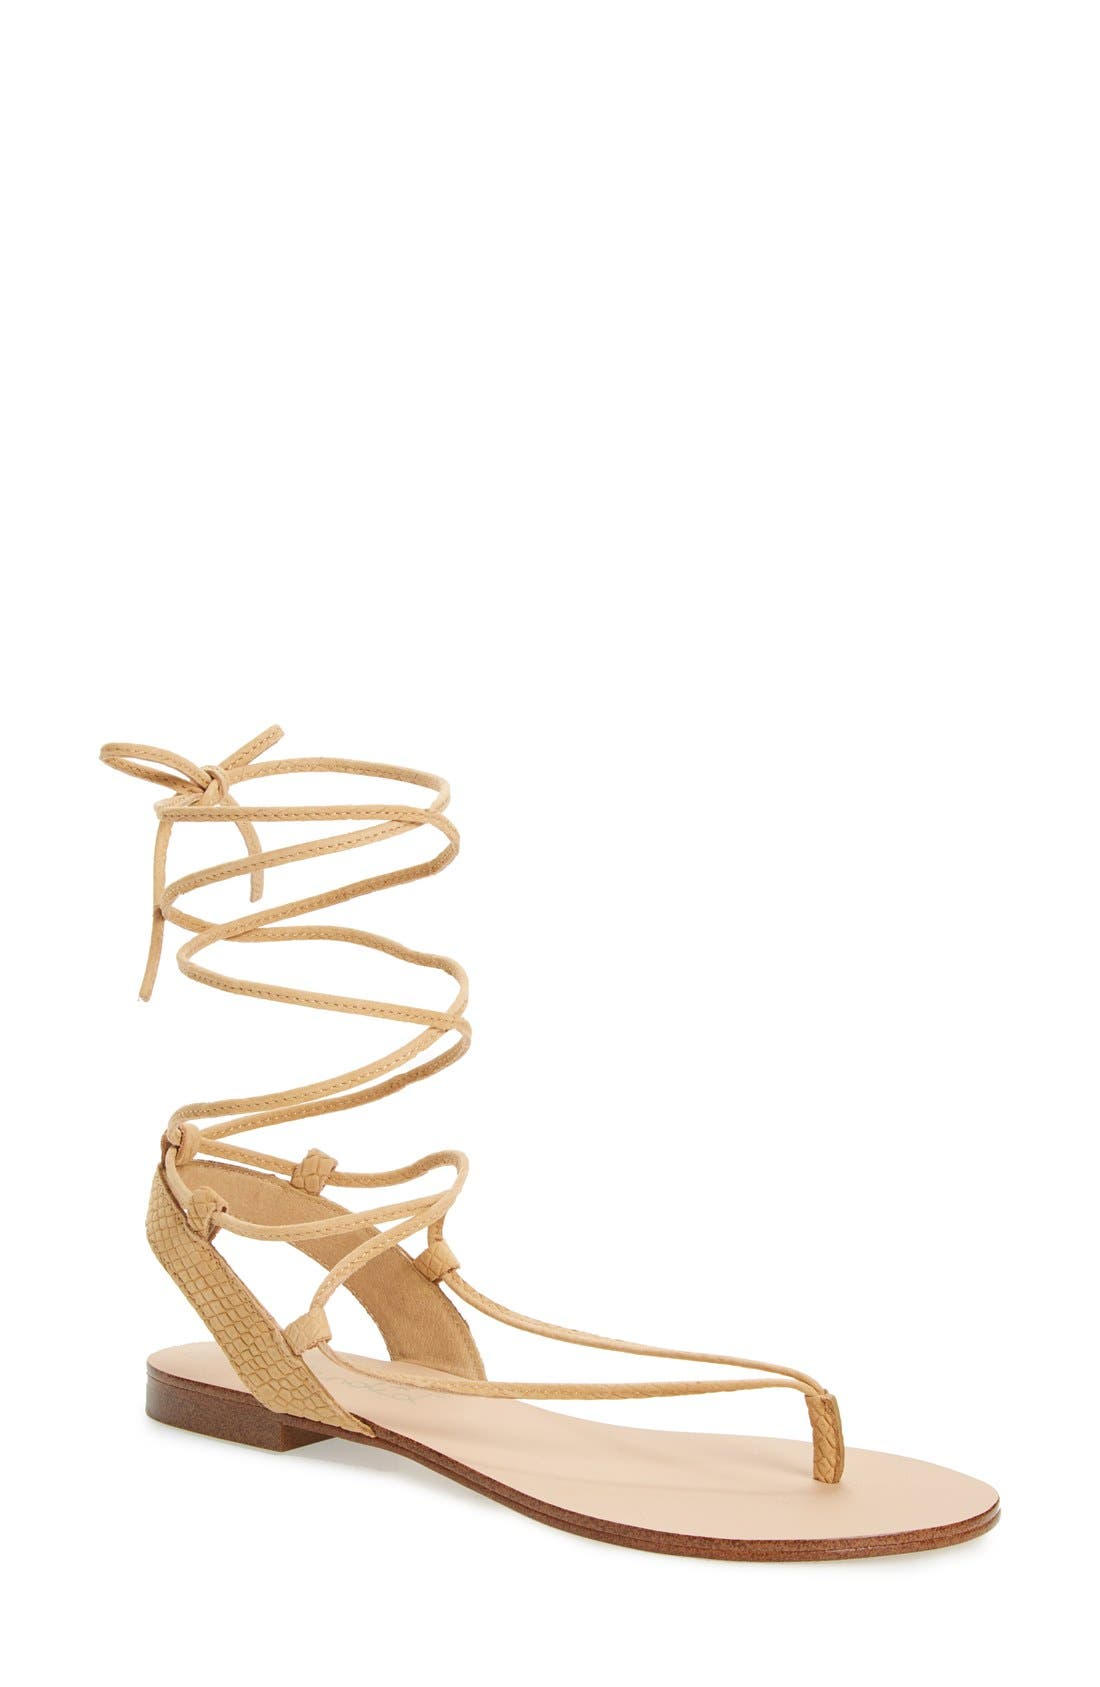 Alternate Image 1 Selected - Splendid 'Candee' Wraparound Lace Flat Sandal (Women)